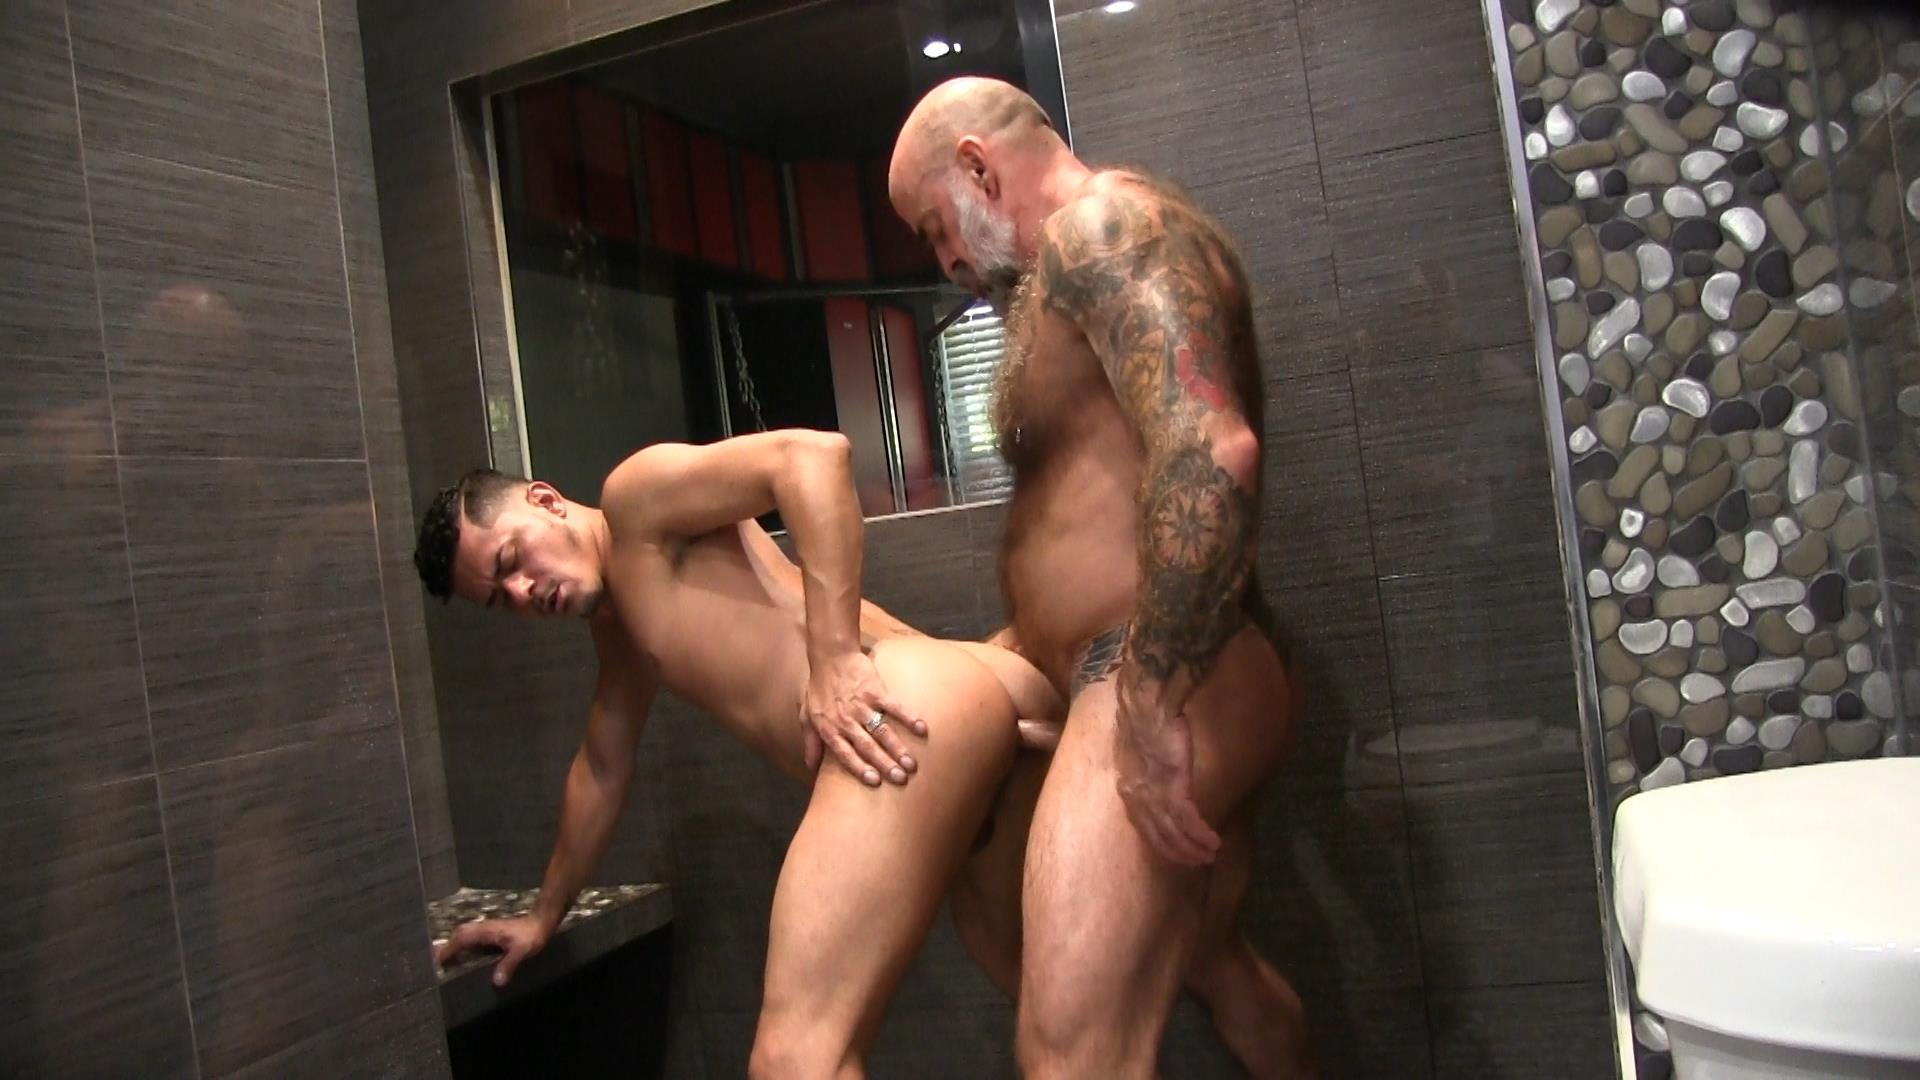 Victor-Cody-XXX-Nate-Pierce-and-Cesar-Xes-Bareback-Bathhouse-Sex-11 Getting Fucked By A Hairy Daddy In The Bathhouse Shower